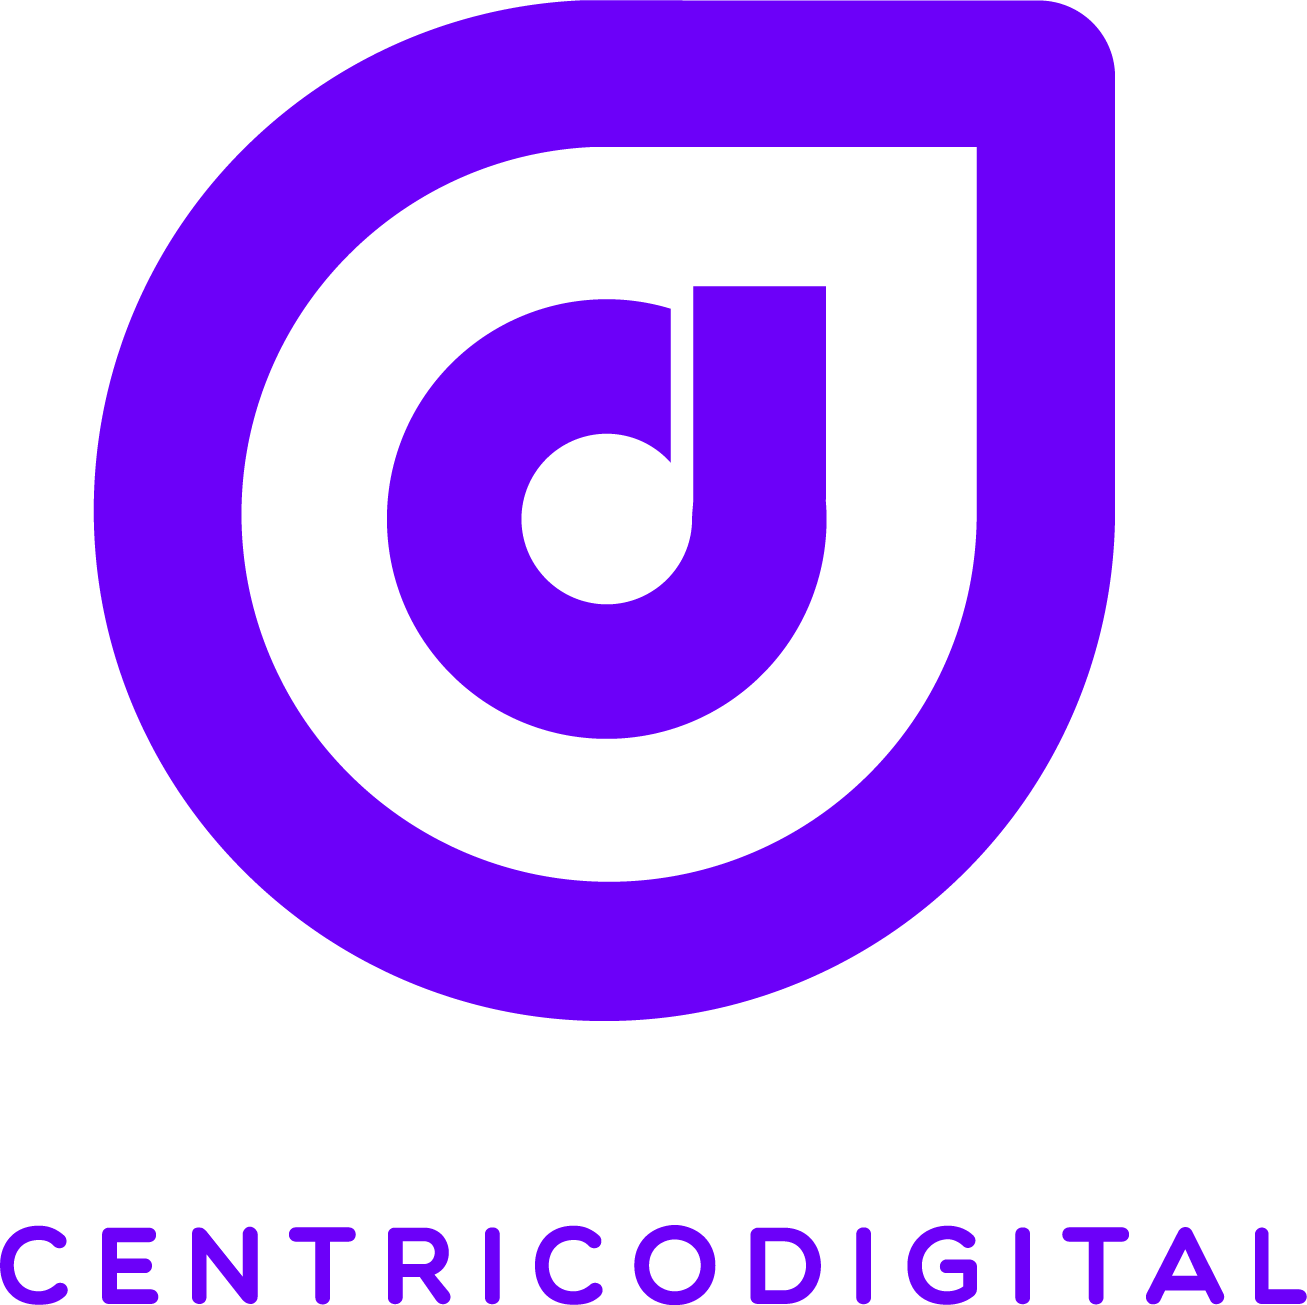 Logo for Céntrico Digital